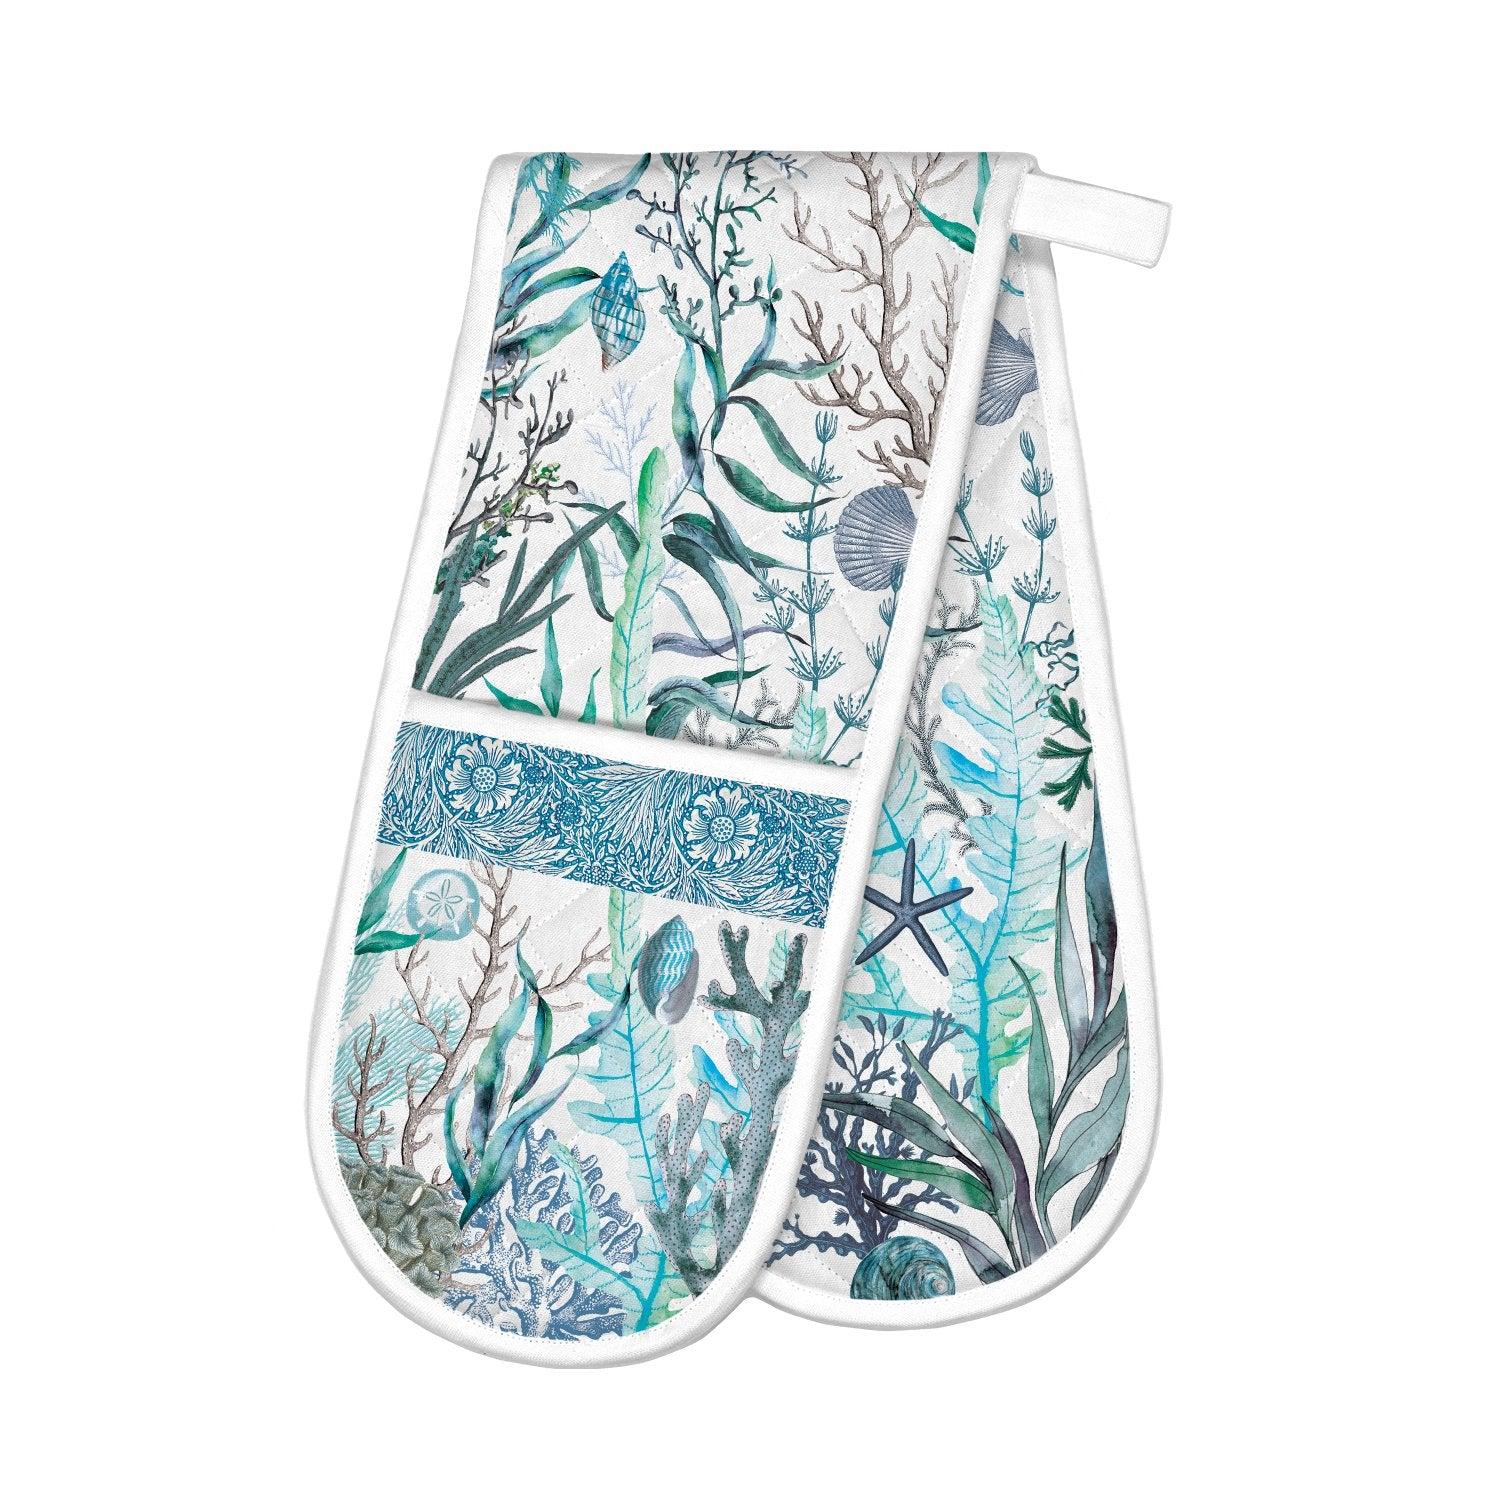 Ocean Tide Double Oven Glove